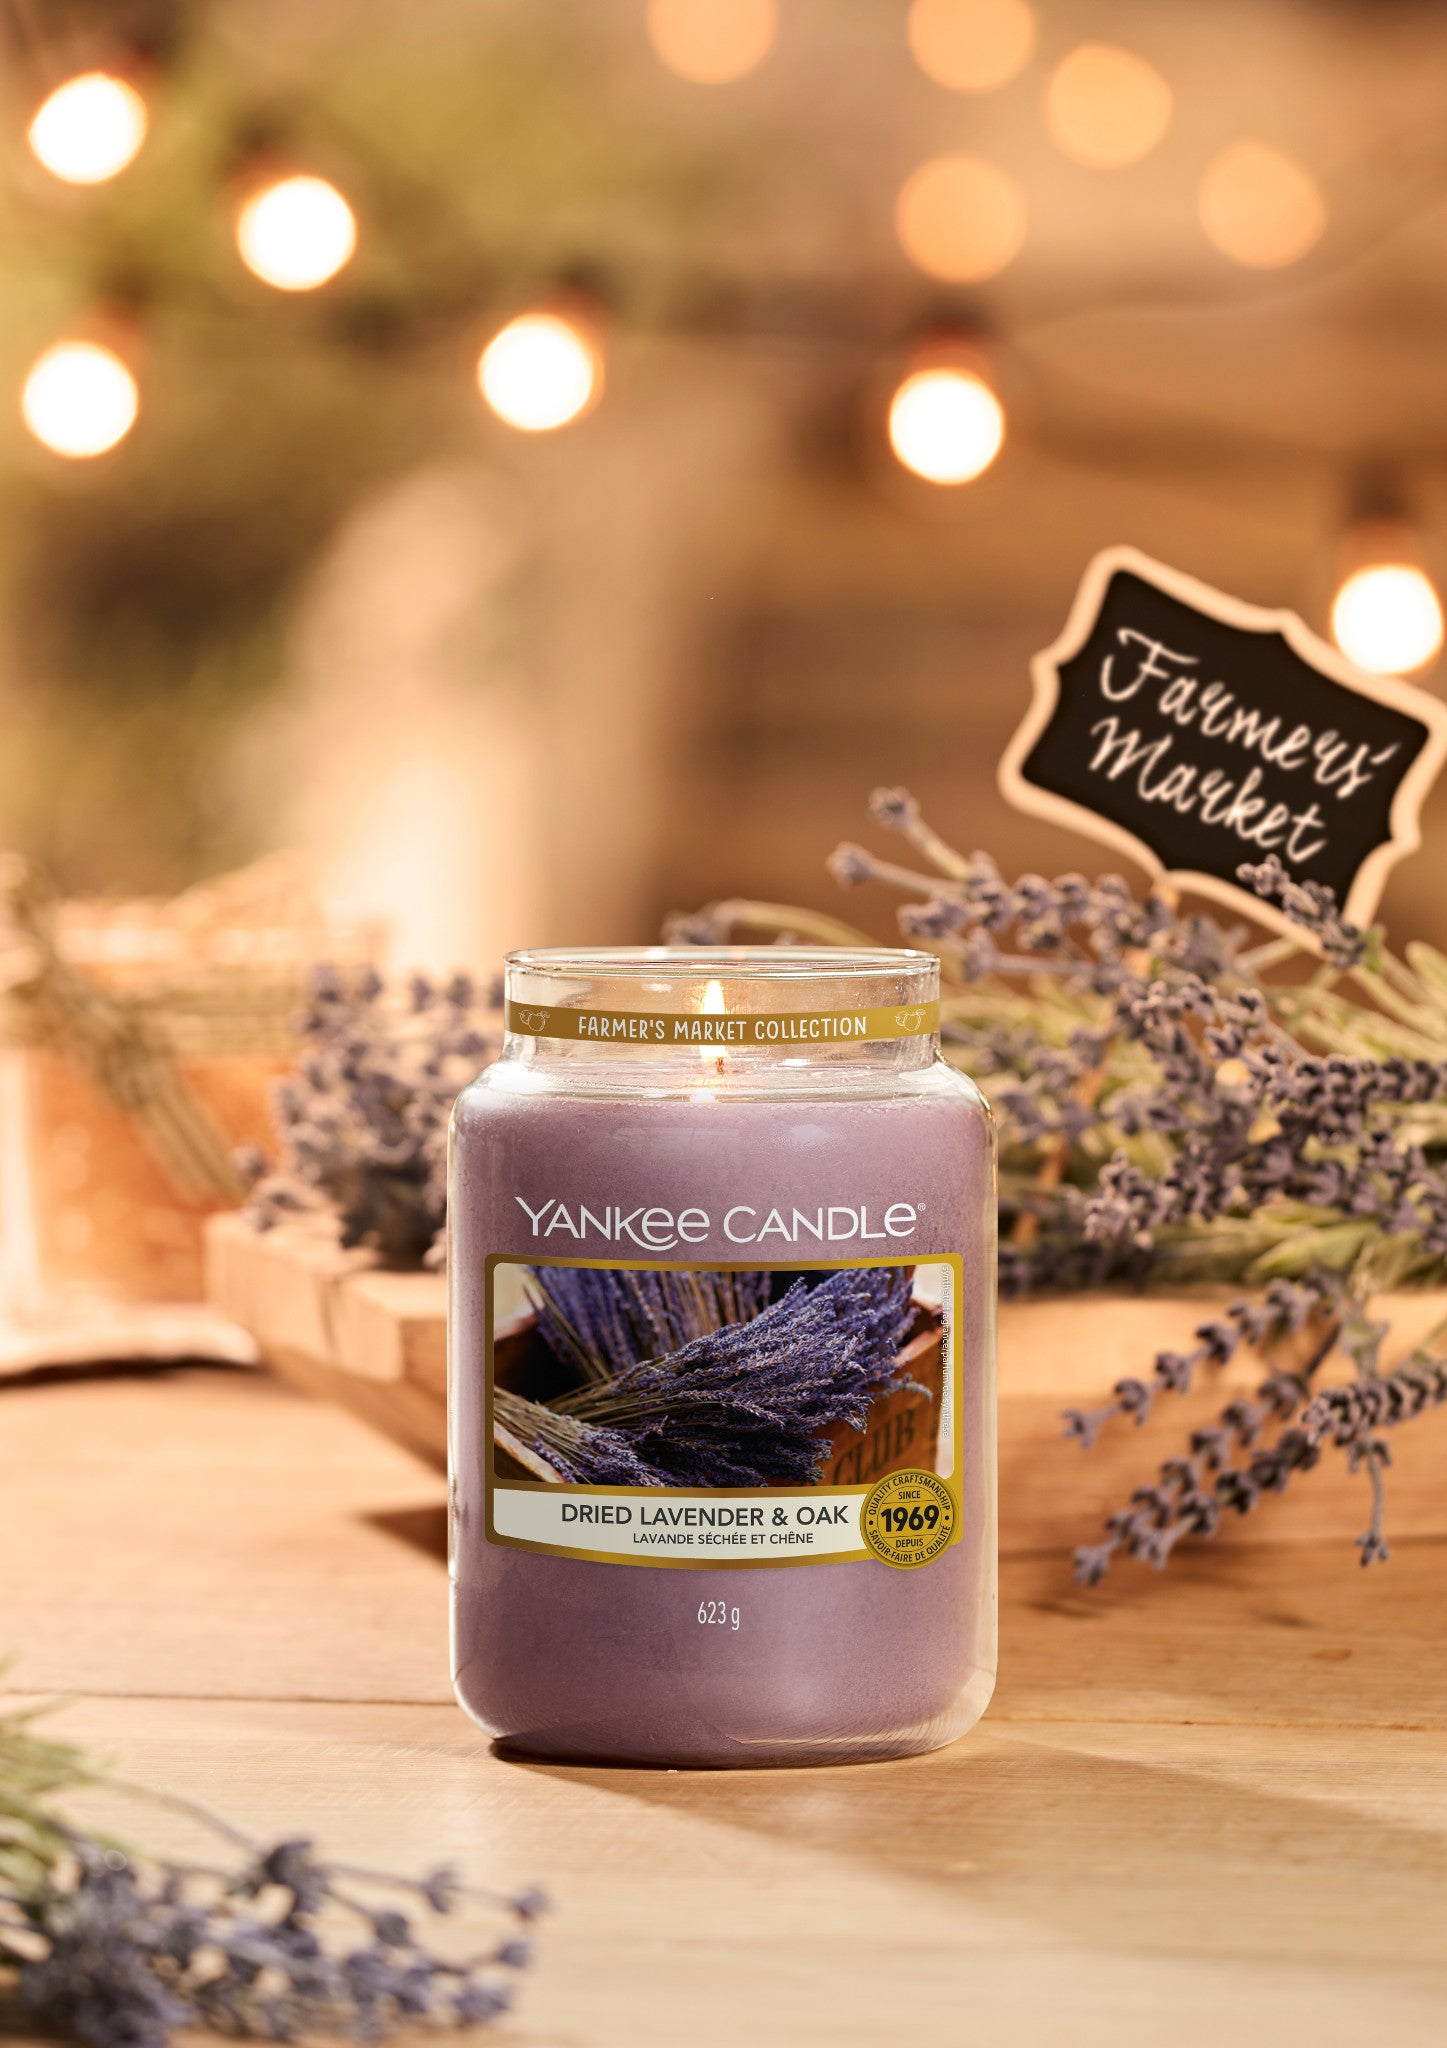 DRIED LAVENDER & OAK -Yankee Candle- Candela Sampler